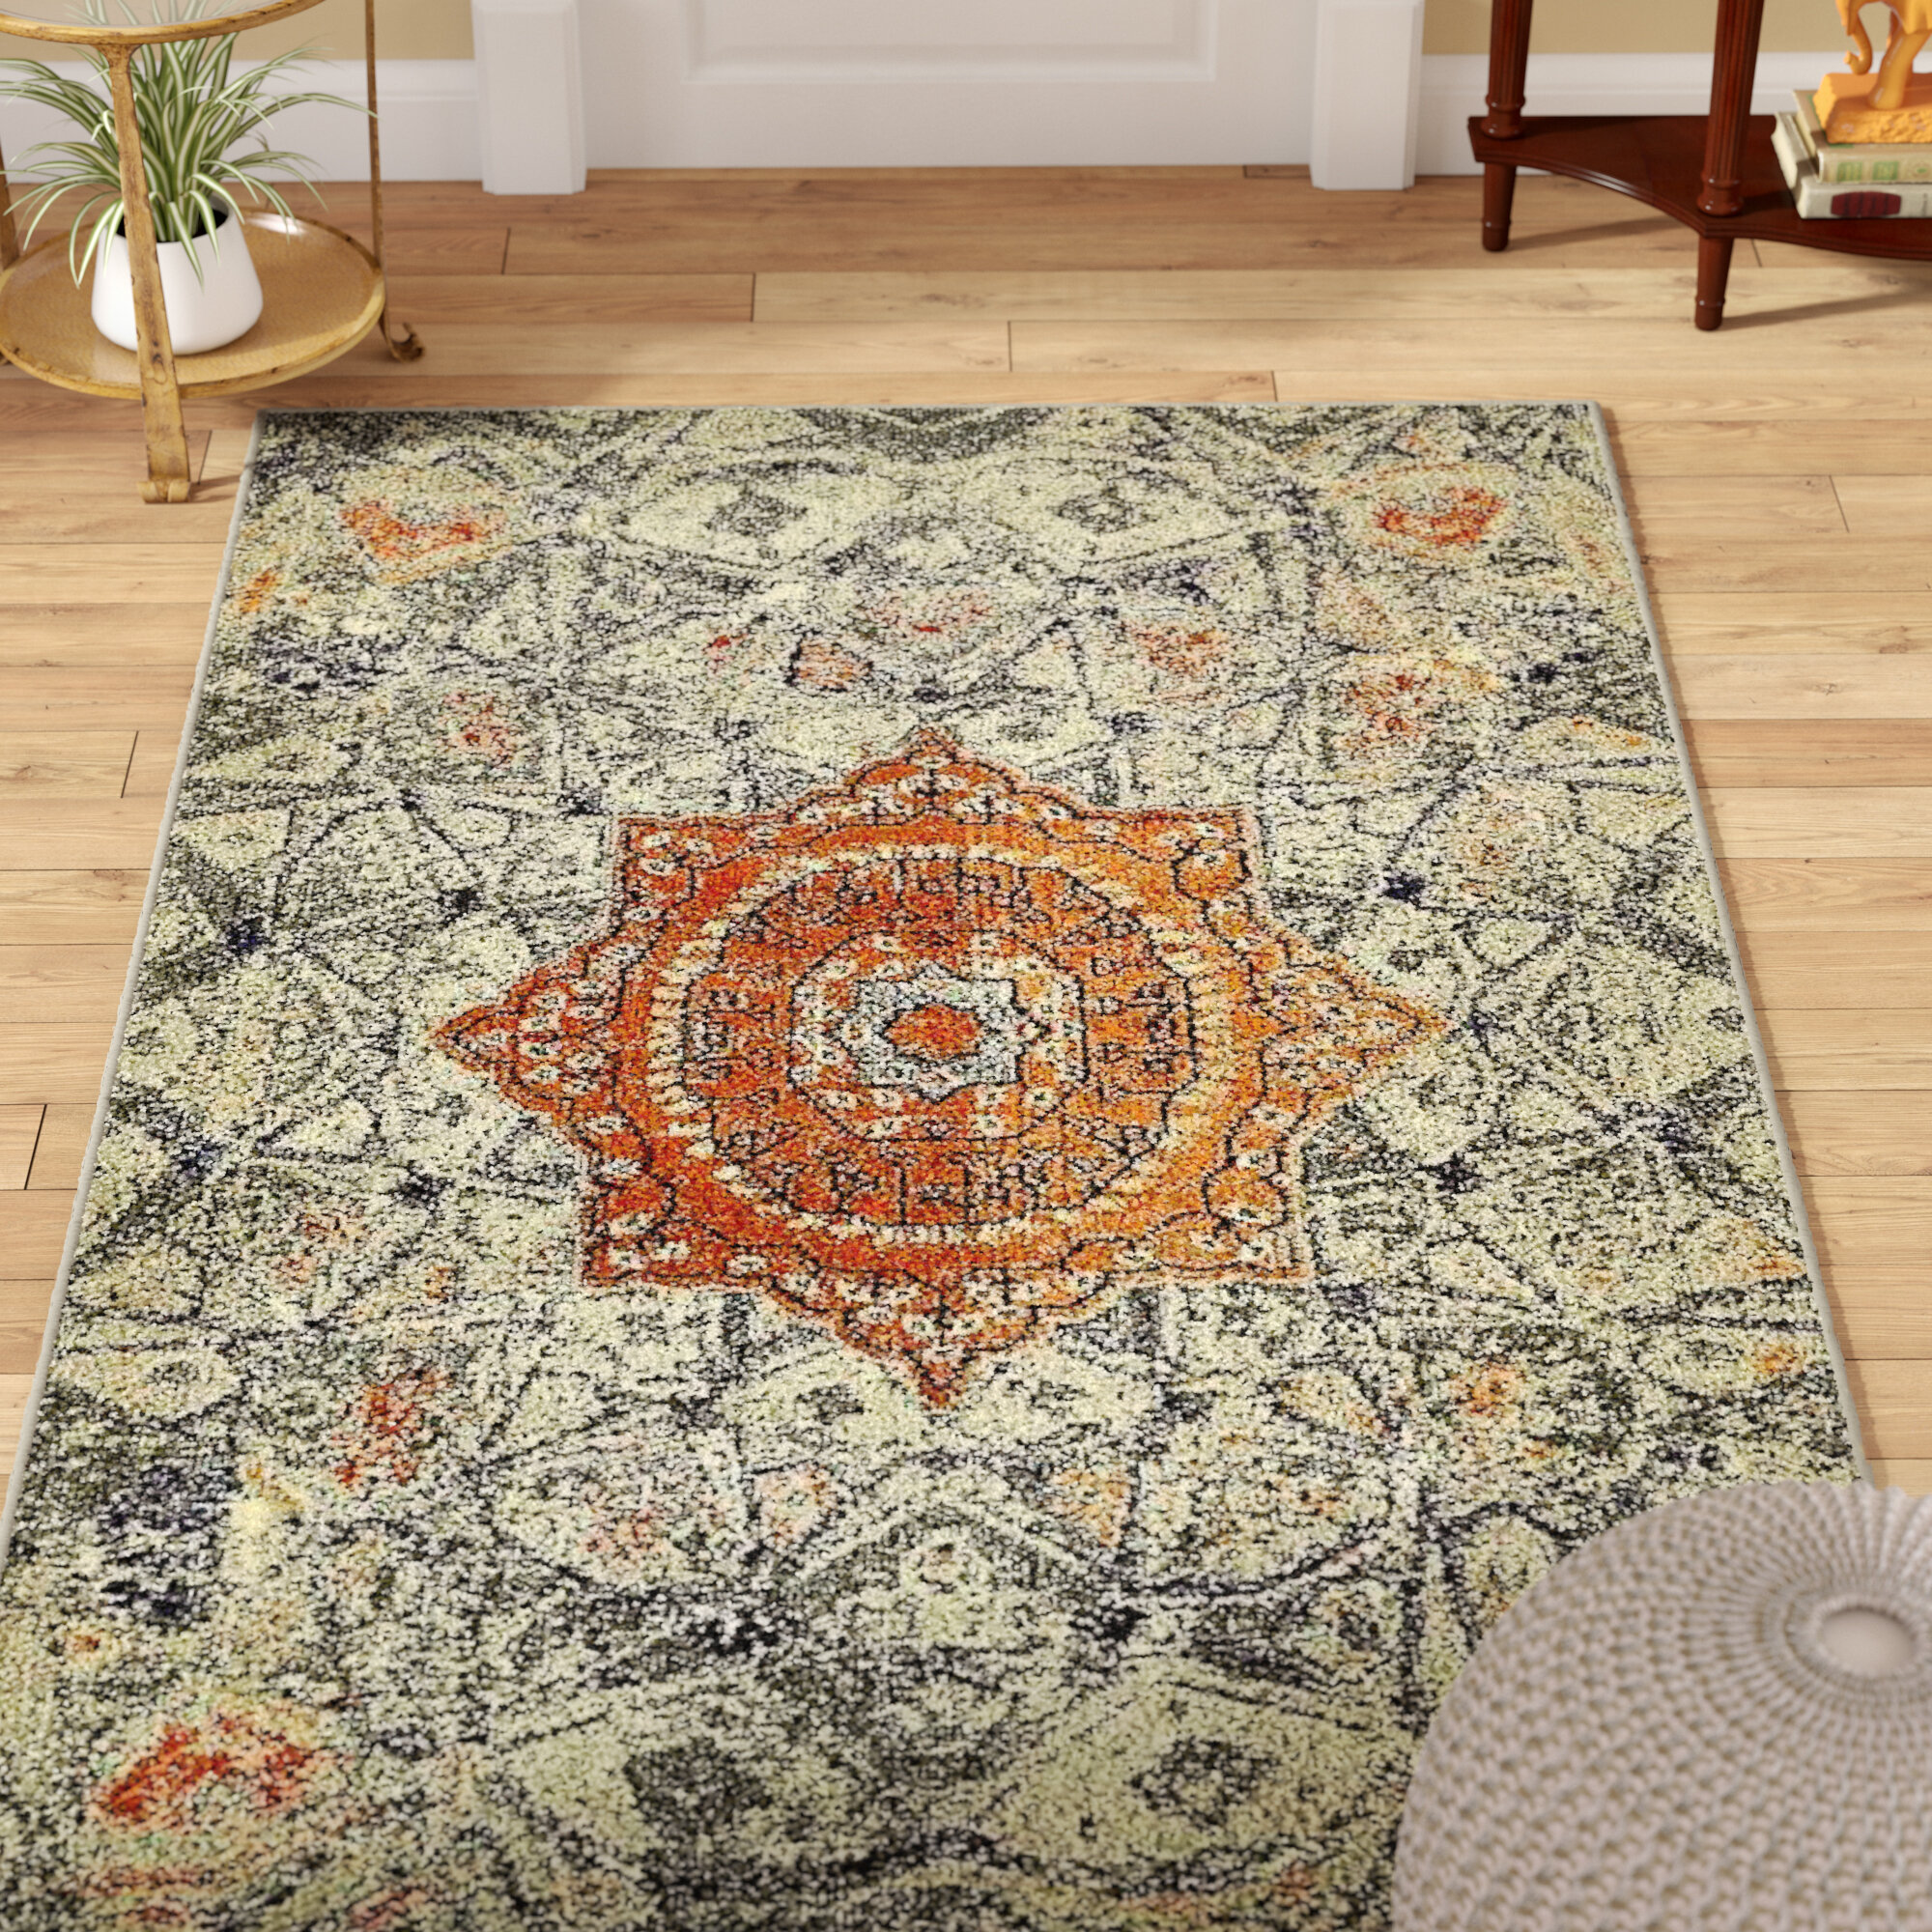 awesome elephantrea rugs knoxville cheap elephant navy foot tribalwesome area persian size of full rug carpet